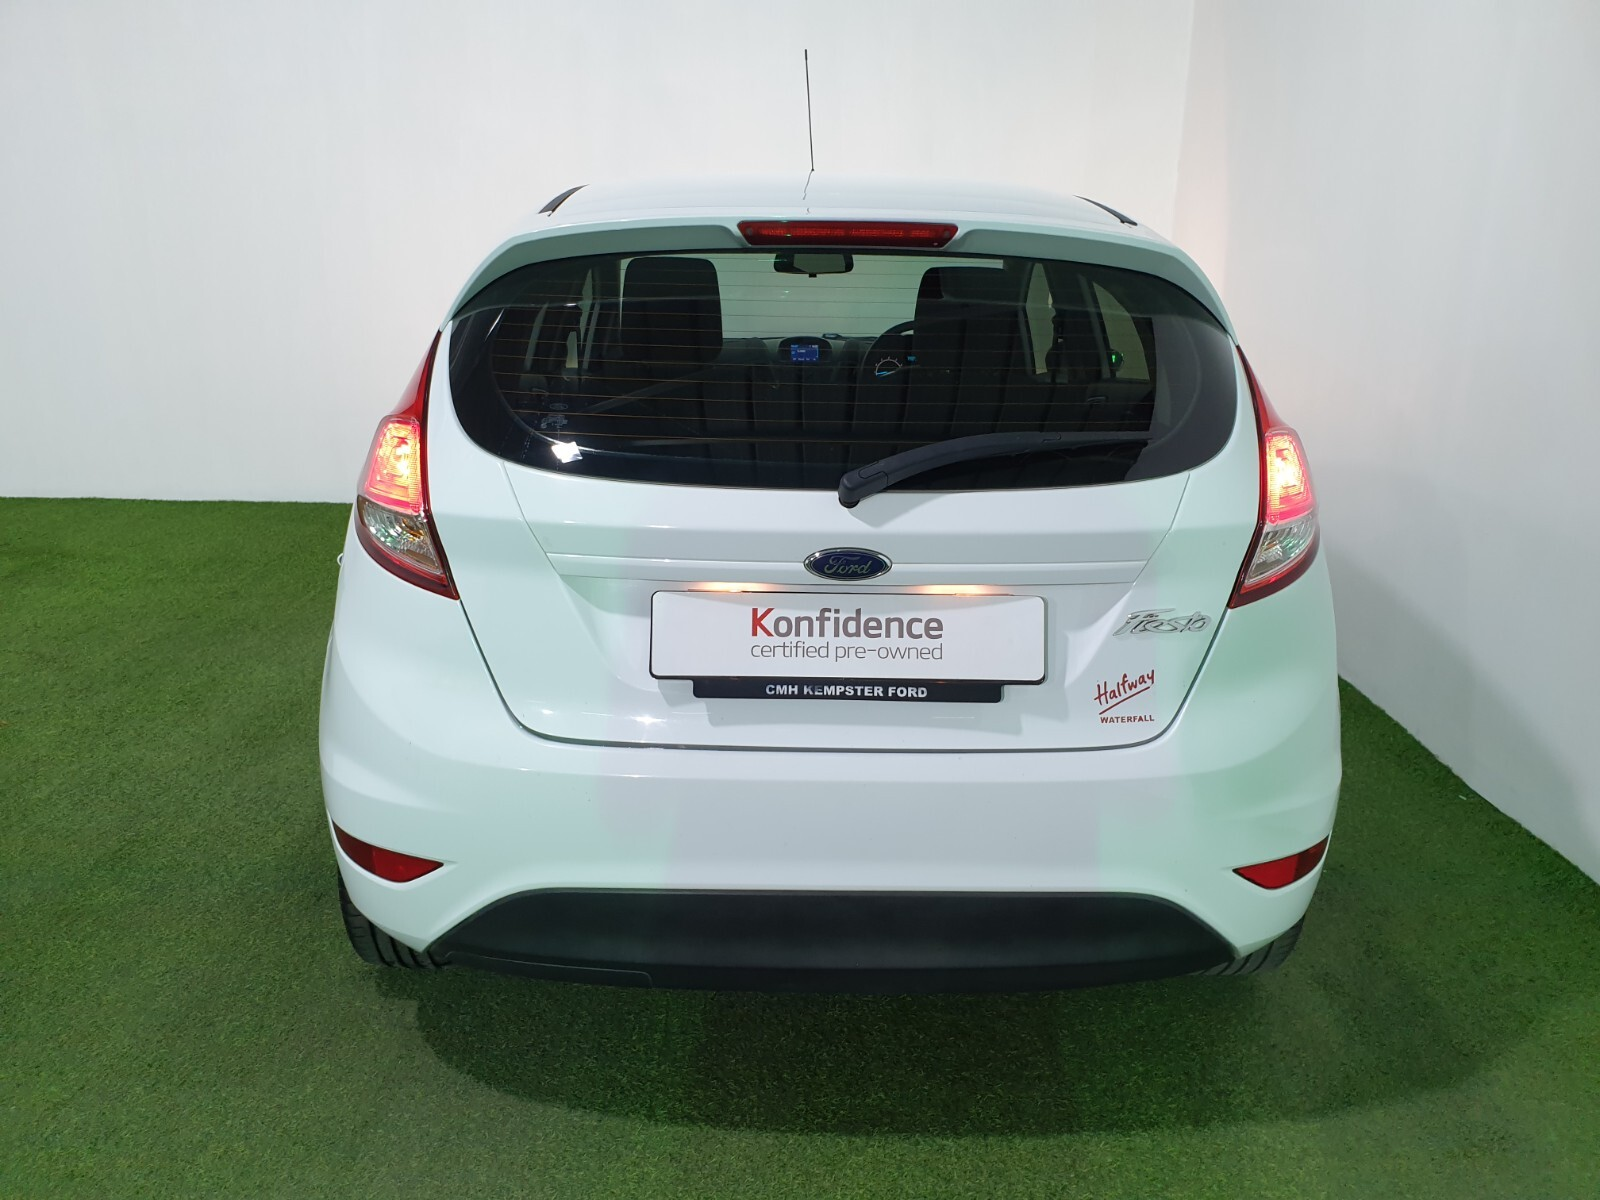 FORD 1.4 AMBIENTE 5 Dr Johannesburg 11327079